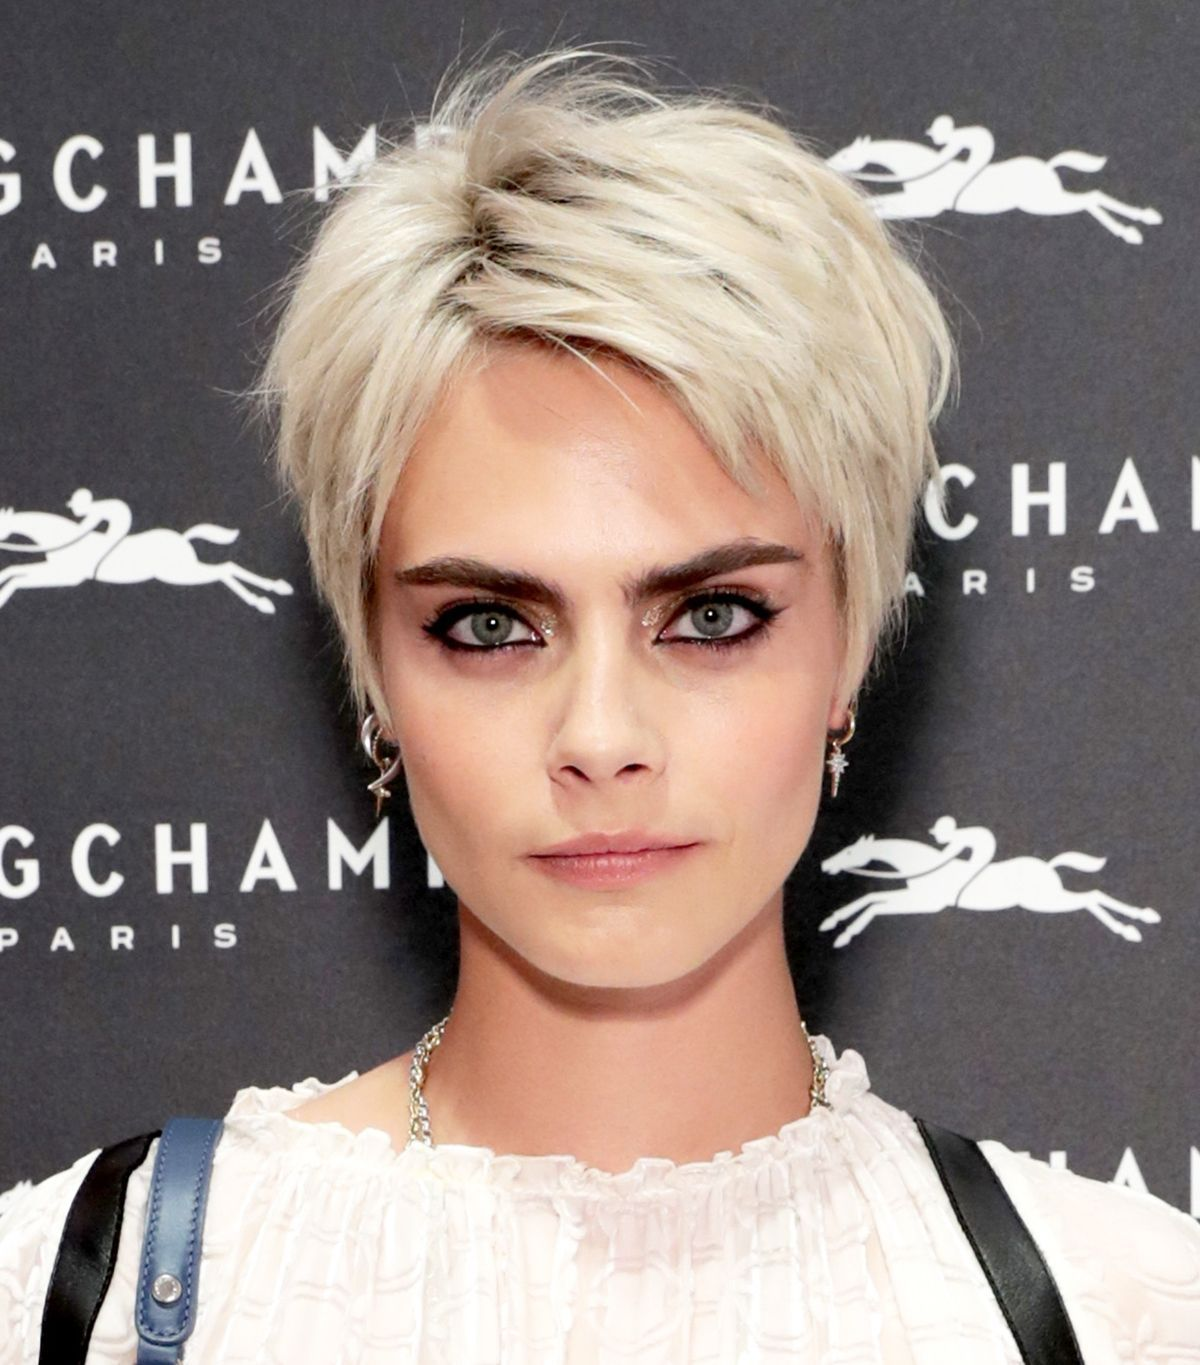 images 15 Cool Haircuts That Will Actually Make You Excited for Autumn